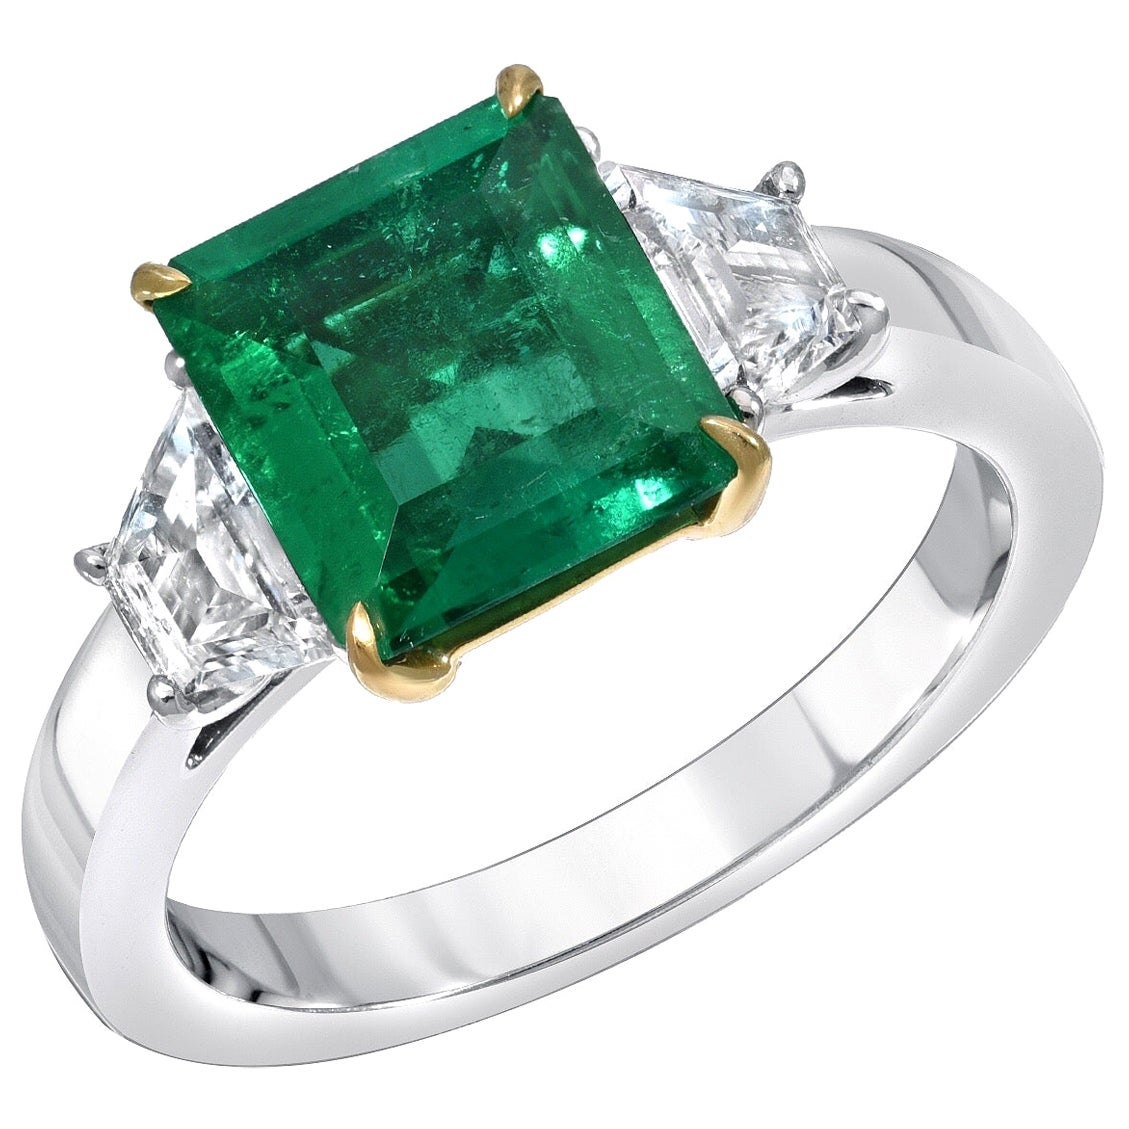 Colombian Emerald Ring Emerald Cut 1.85 Carats AGL Certified Insignificant Oil